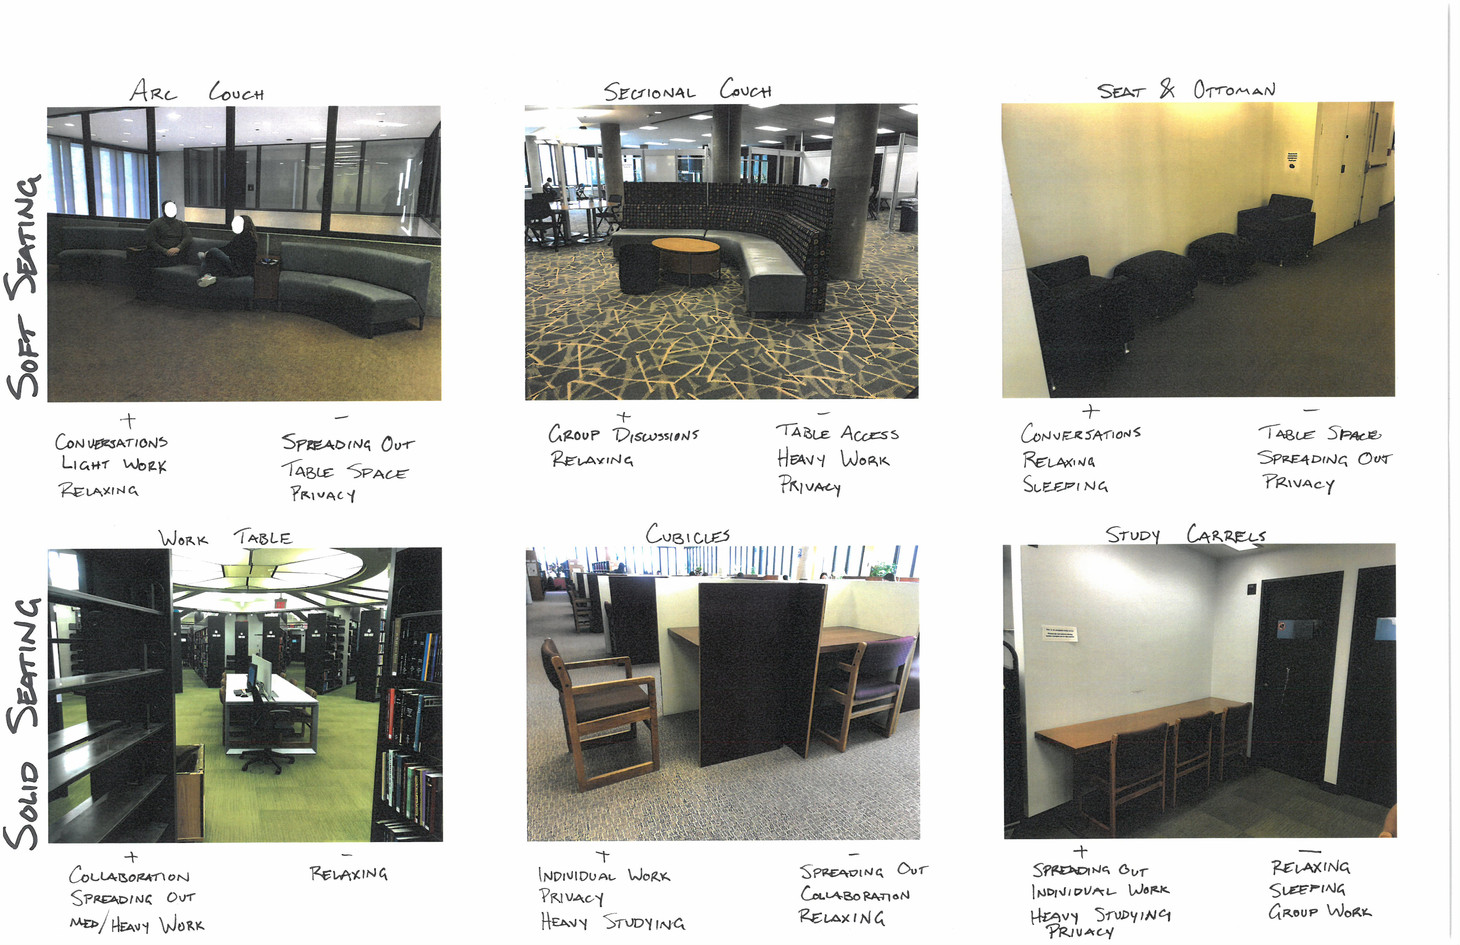 Annotated library seating audit